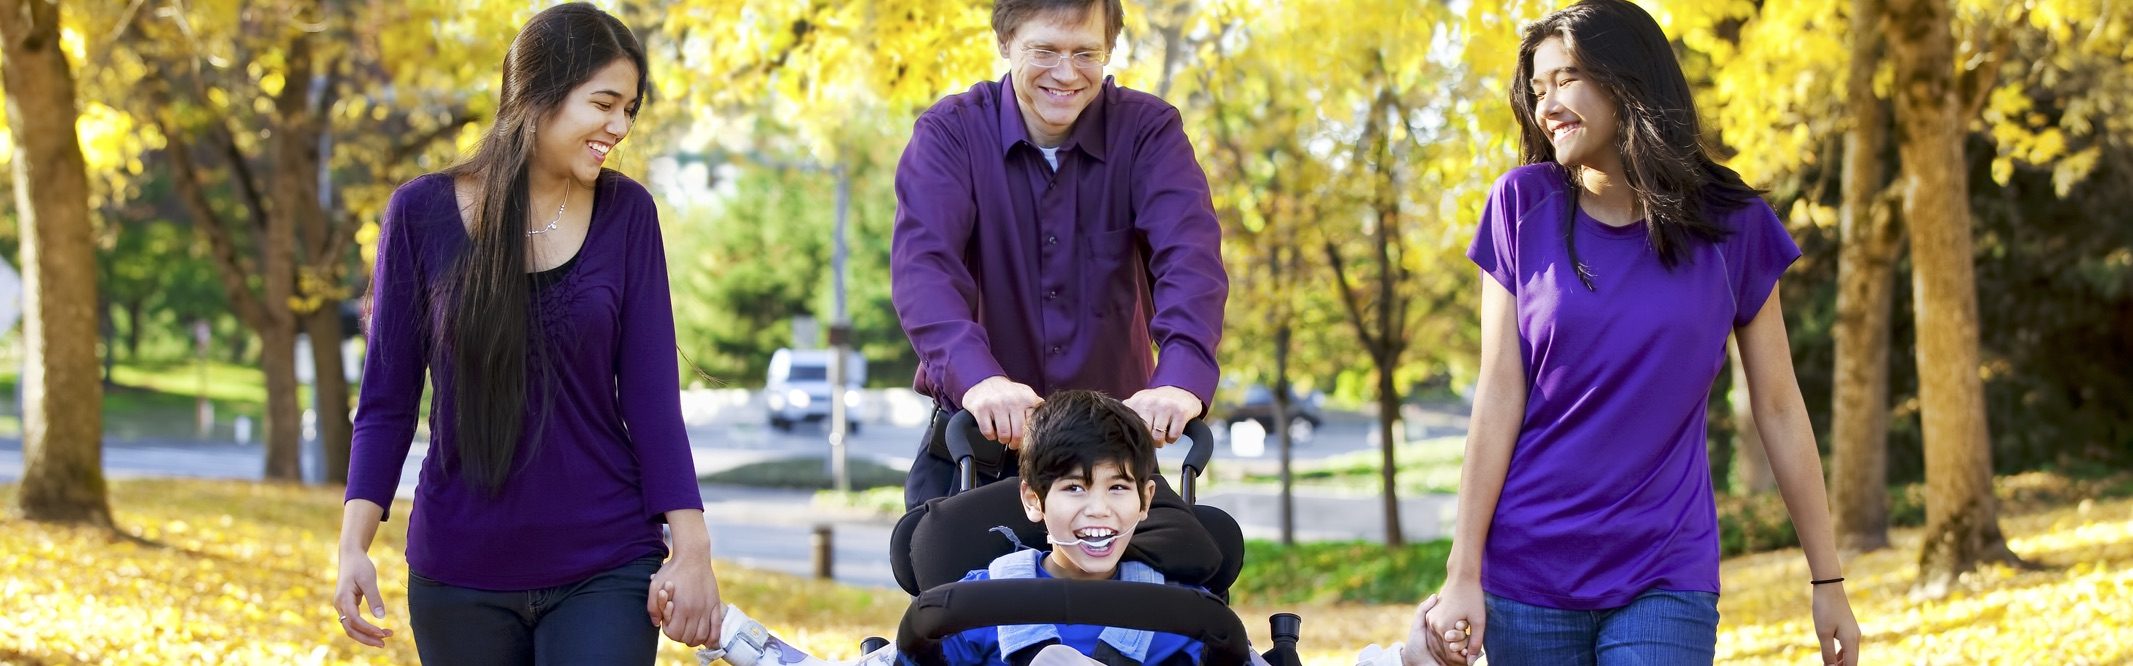 Three people in purple shirts walking with a boy in a wheelchair